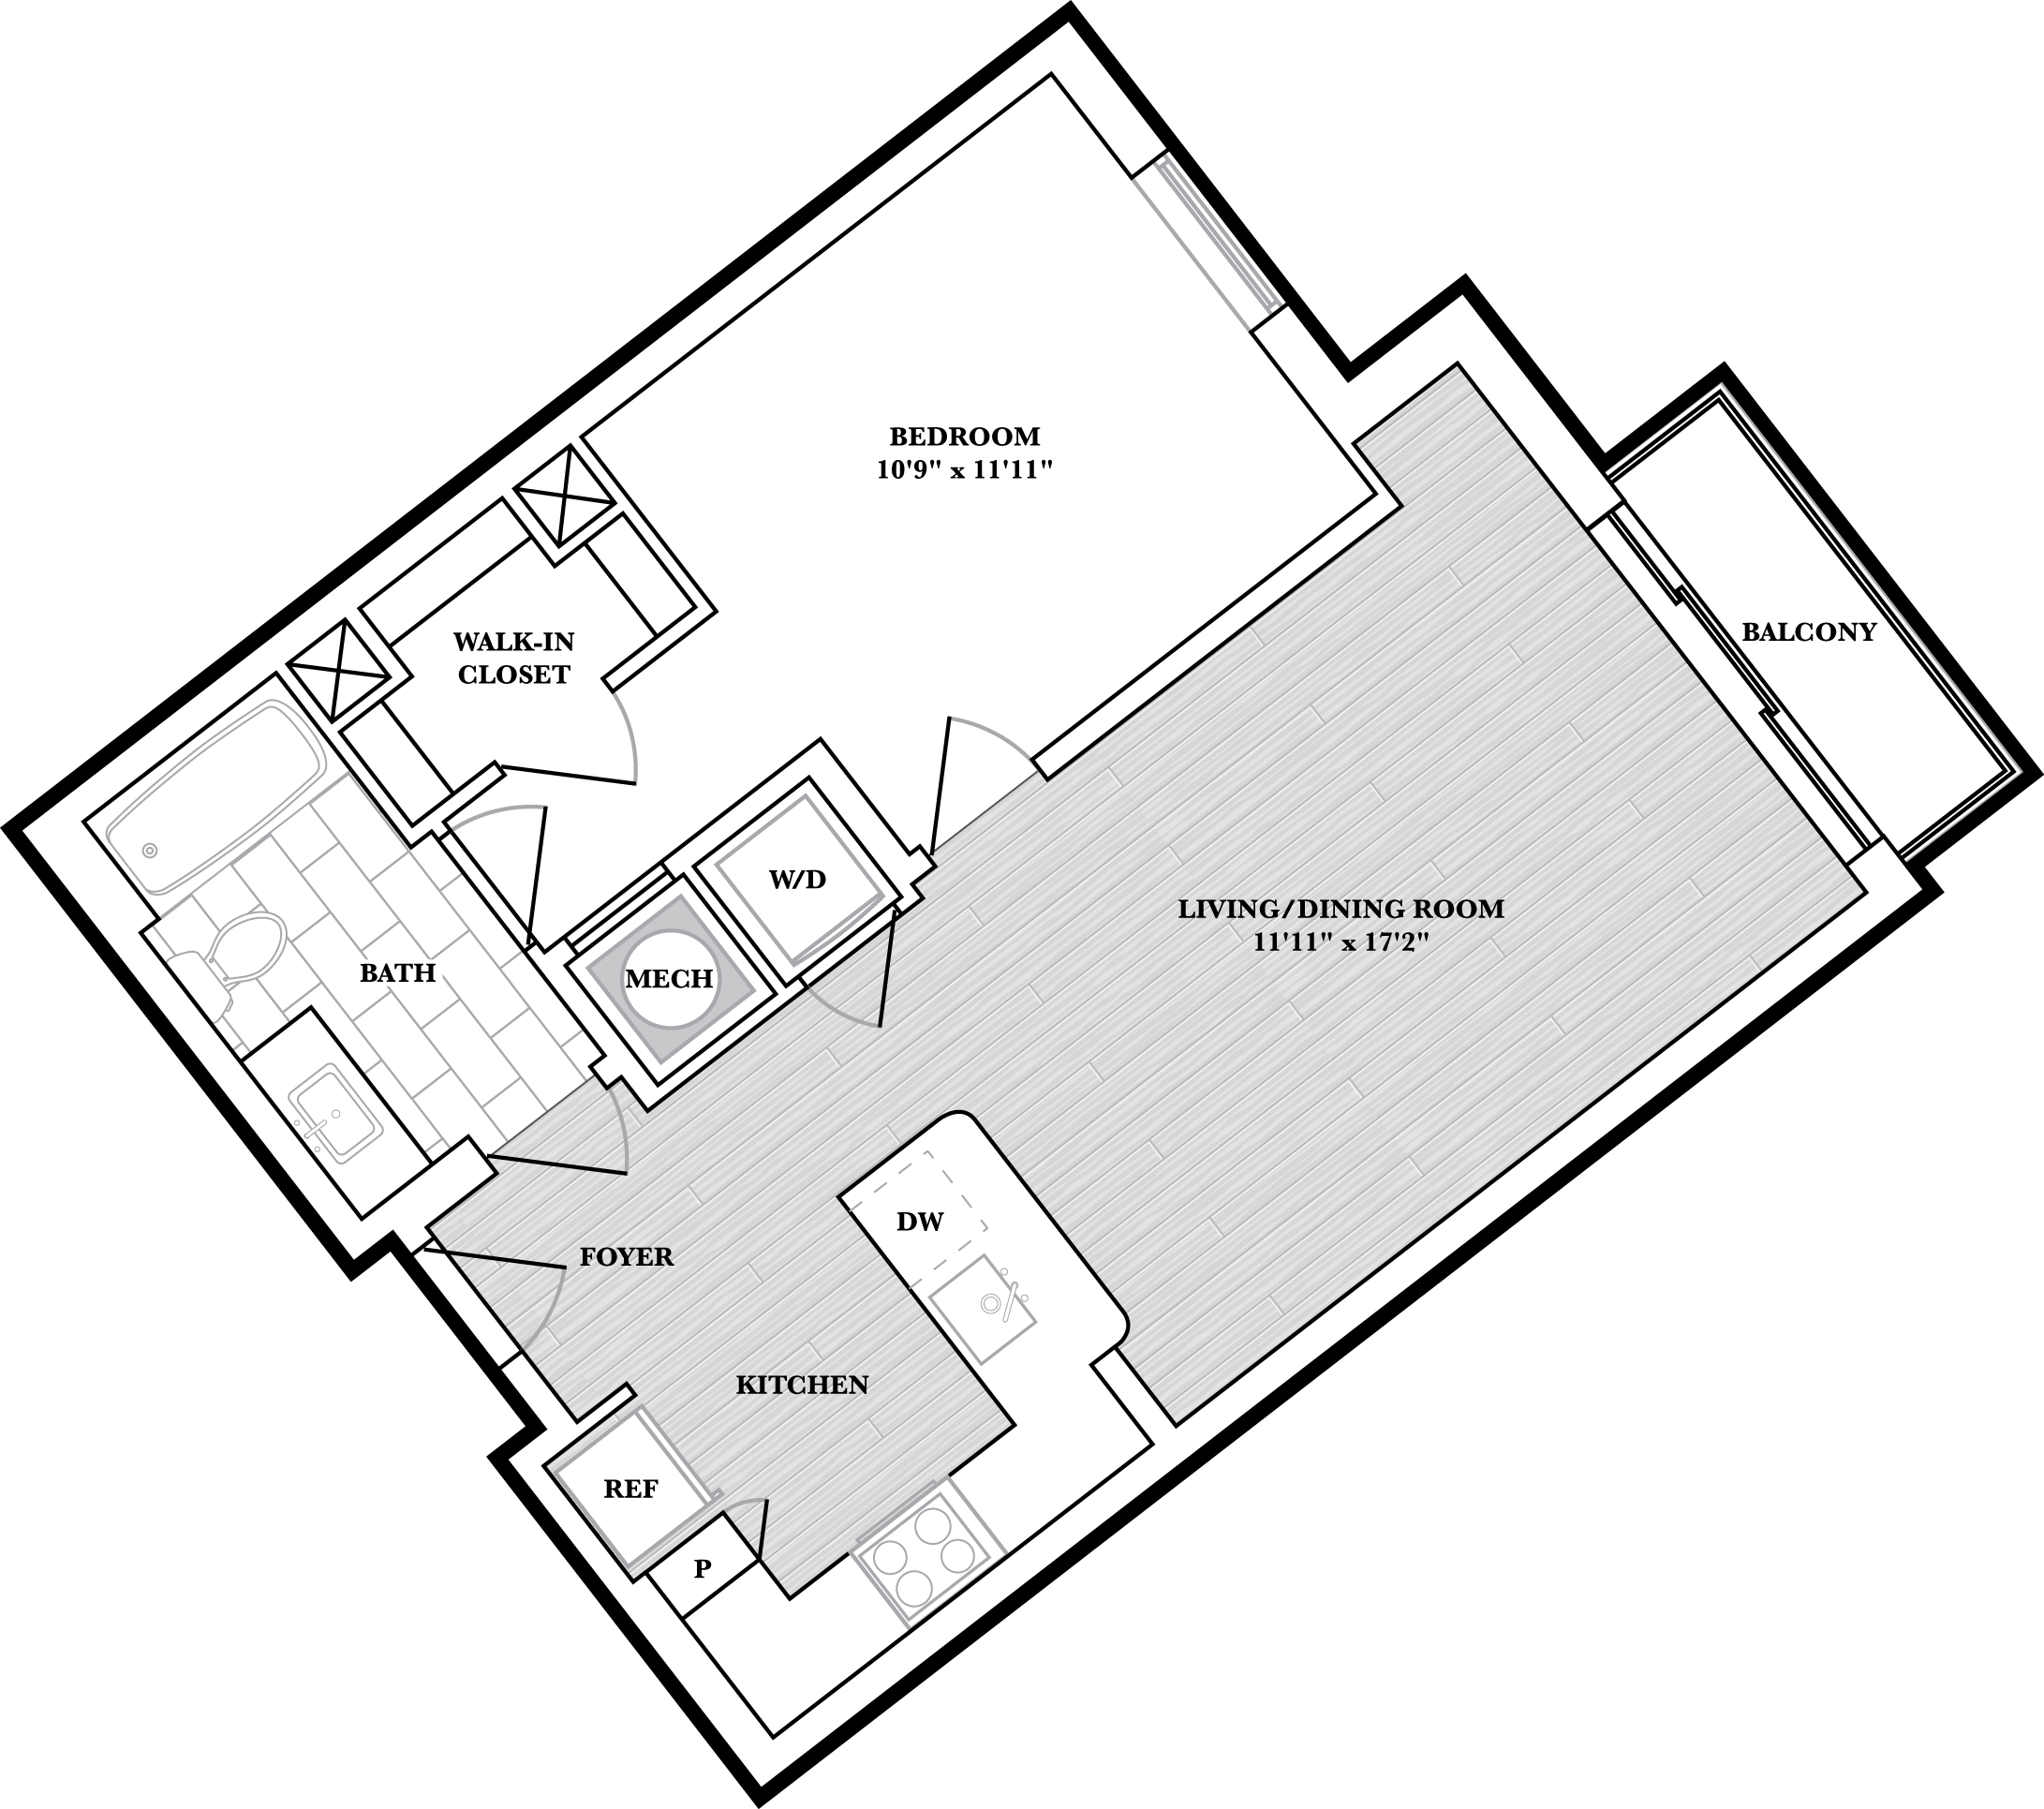 floorplan image of N409